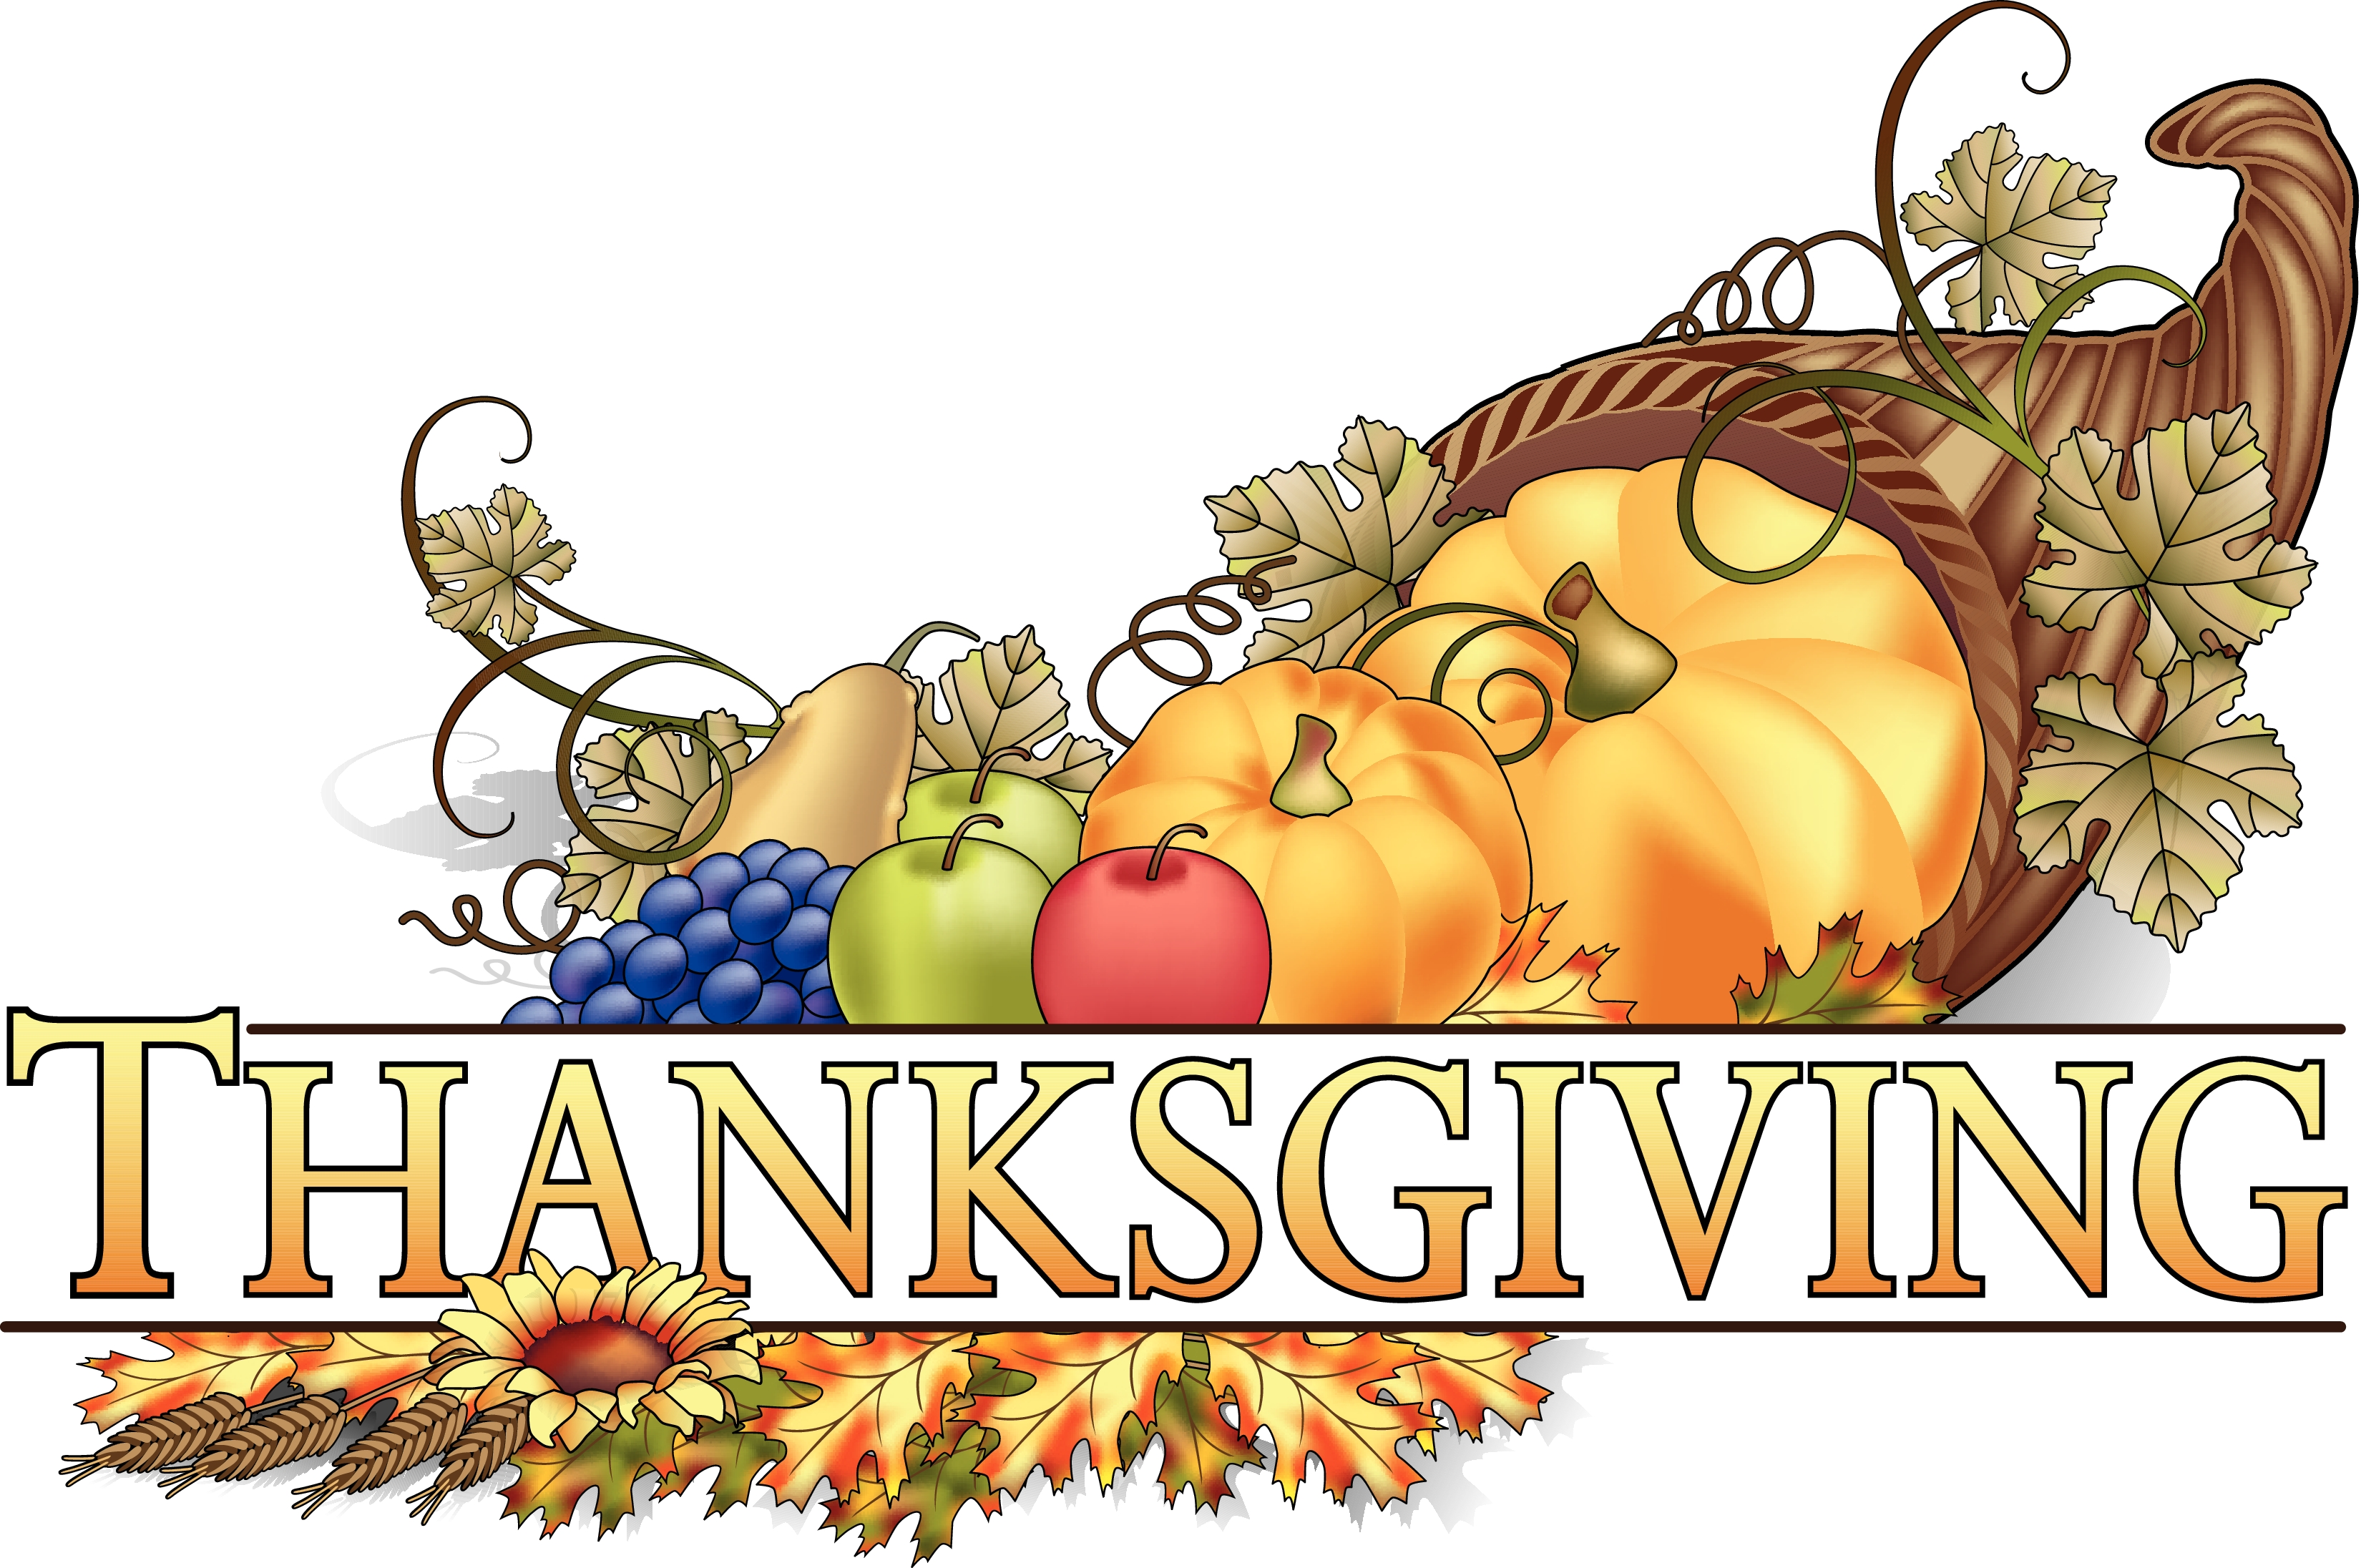 Thanksgiving Day Graphics - Clipart Libr-Thanksgiving Day Graphics - Clipart library-12